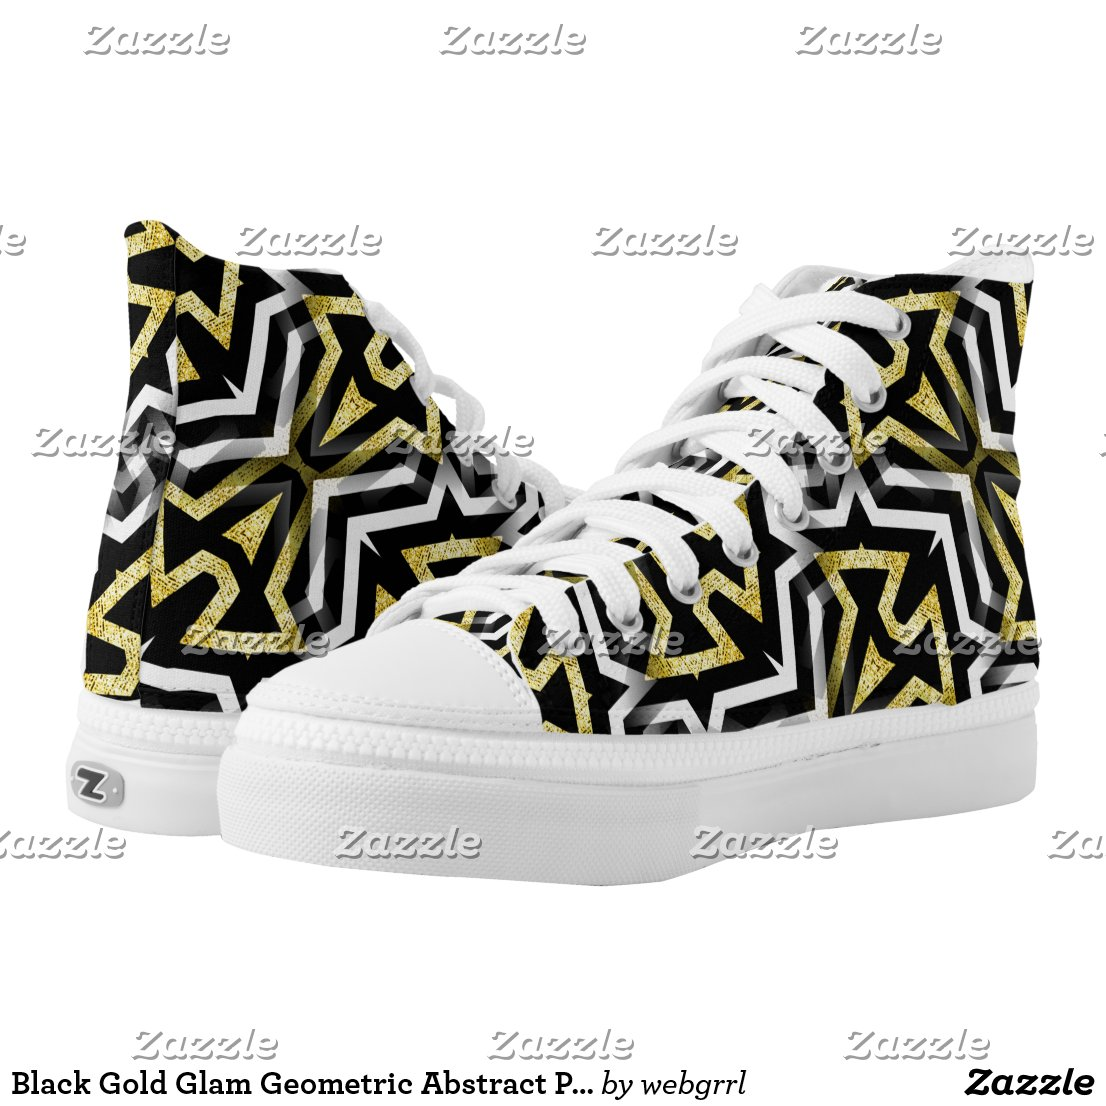 Black Gold Glam Geometric Abstract Pattern HT1 High-Top Sneakers by webgrrl